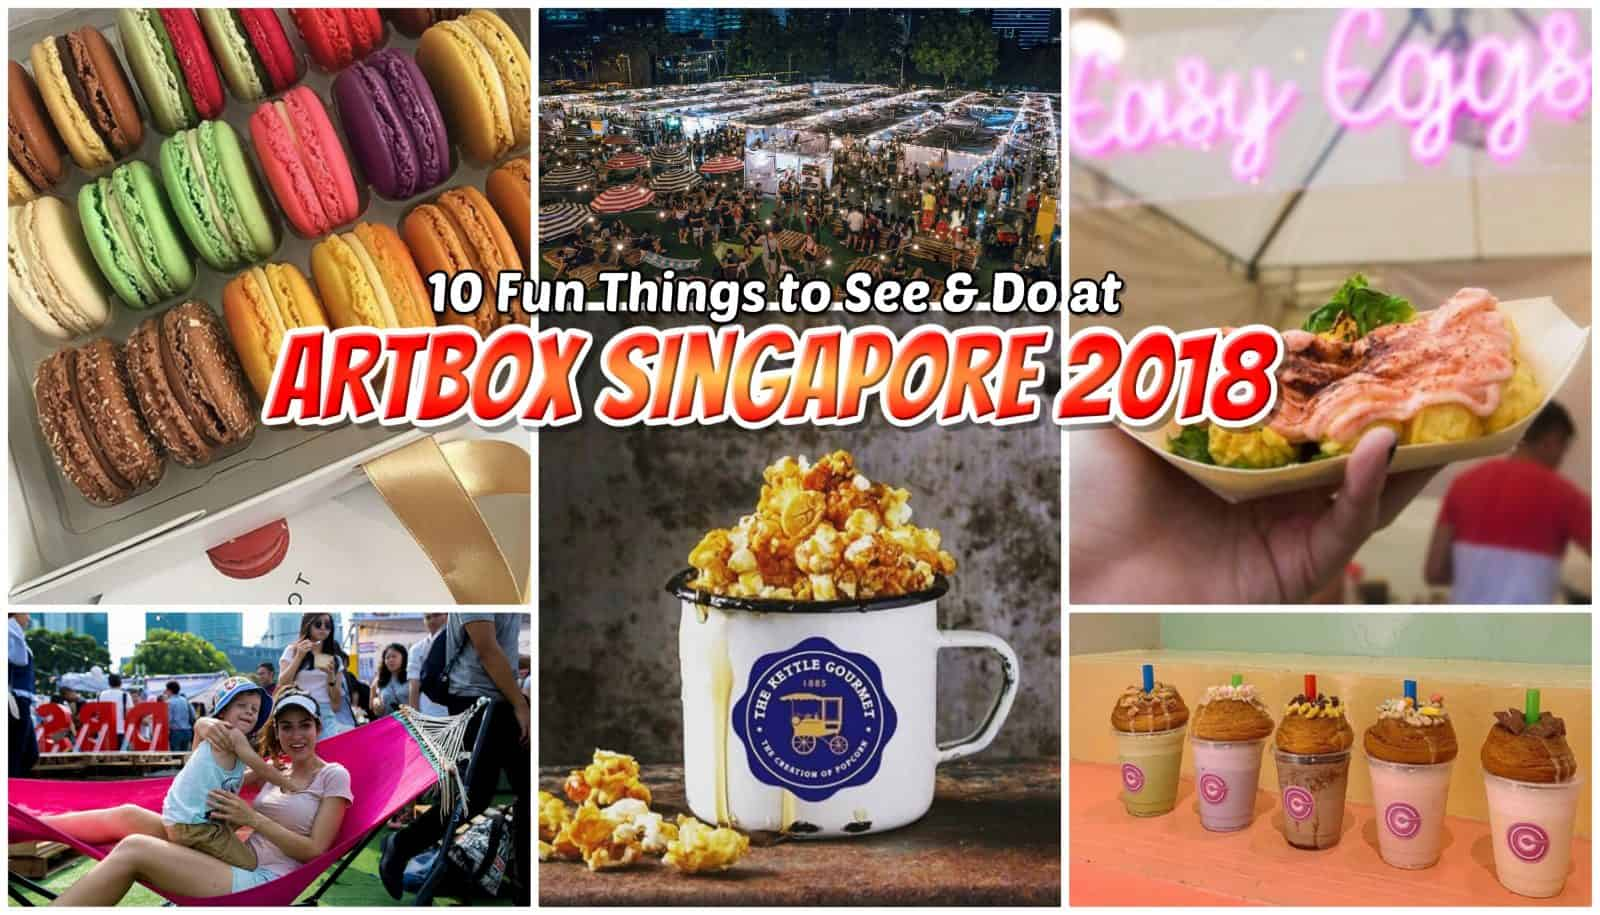 10 Fun Things to See and Do at the Amazing Artbox Singapore 2018